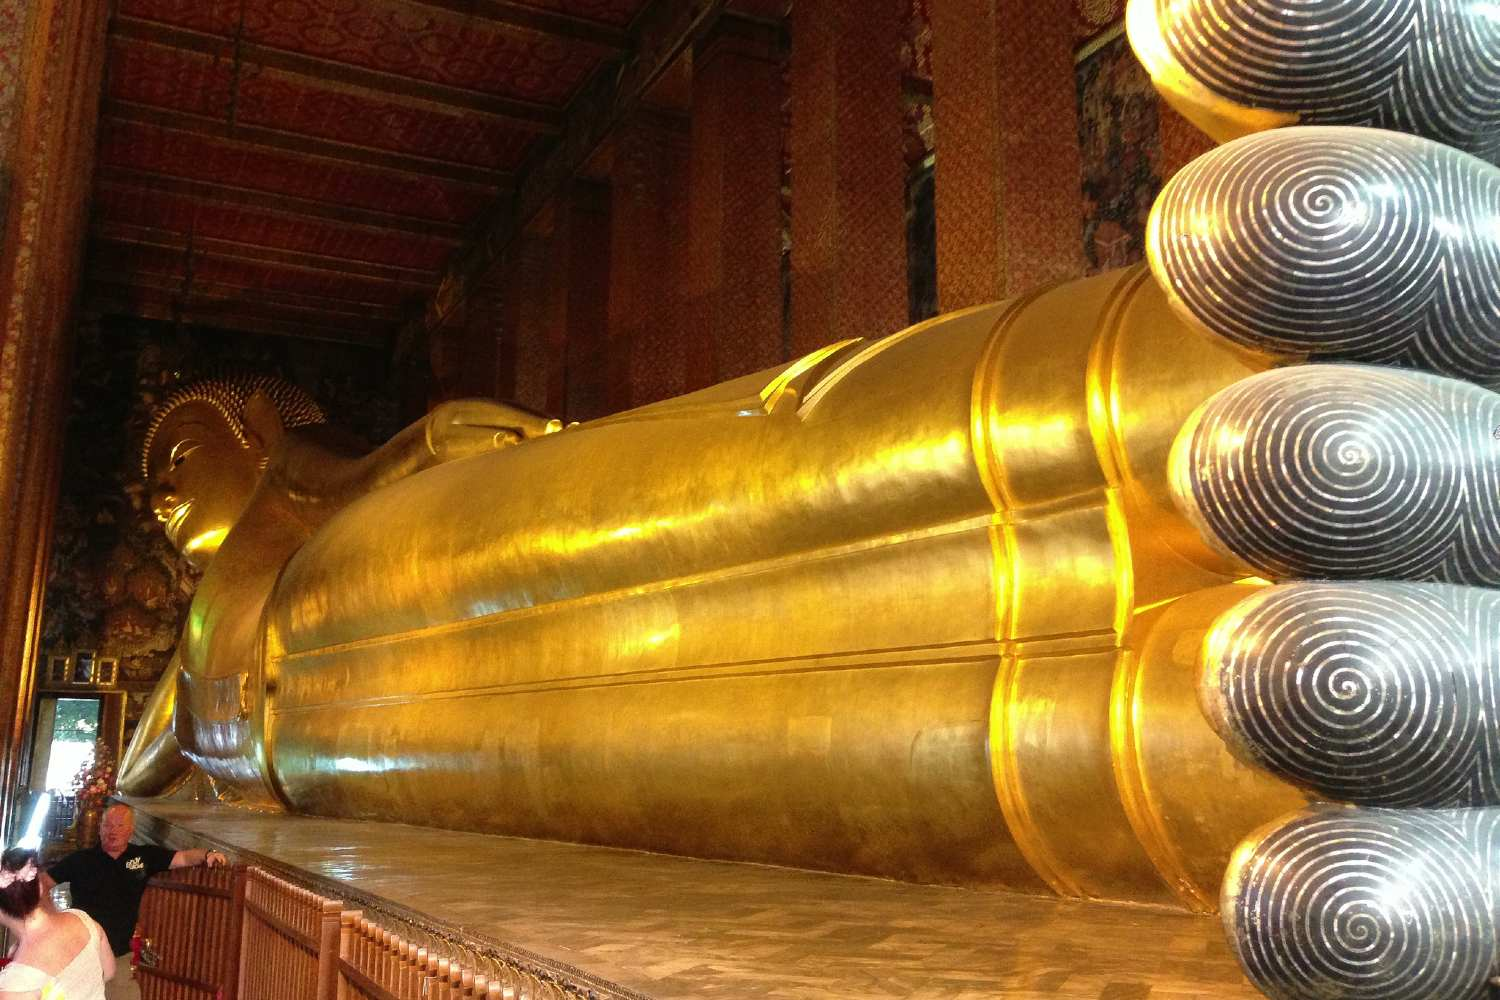 The giant Reclining Buddha at the Wat Pho temple in Bangkok